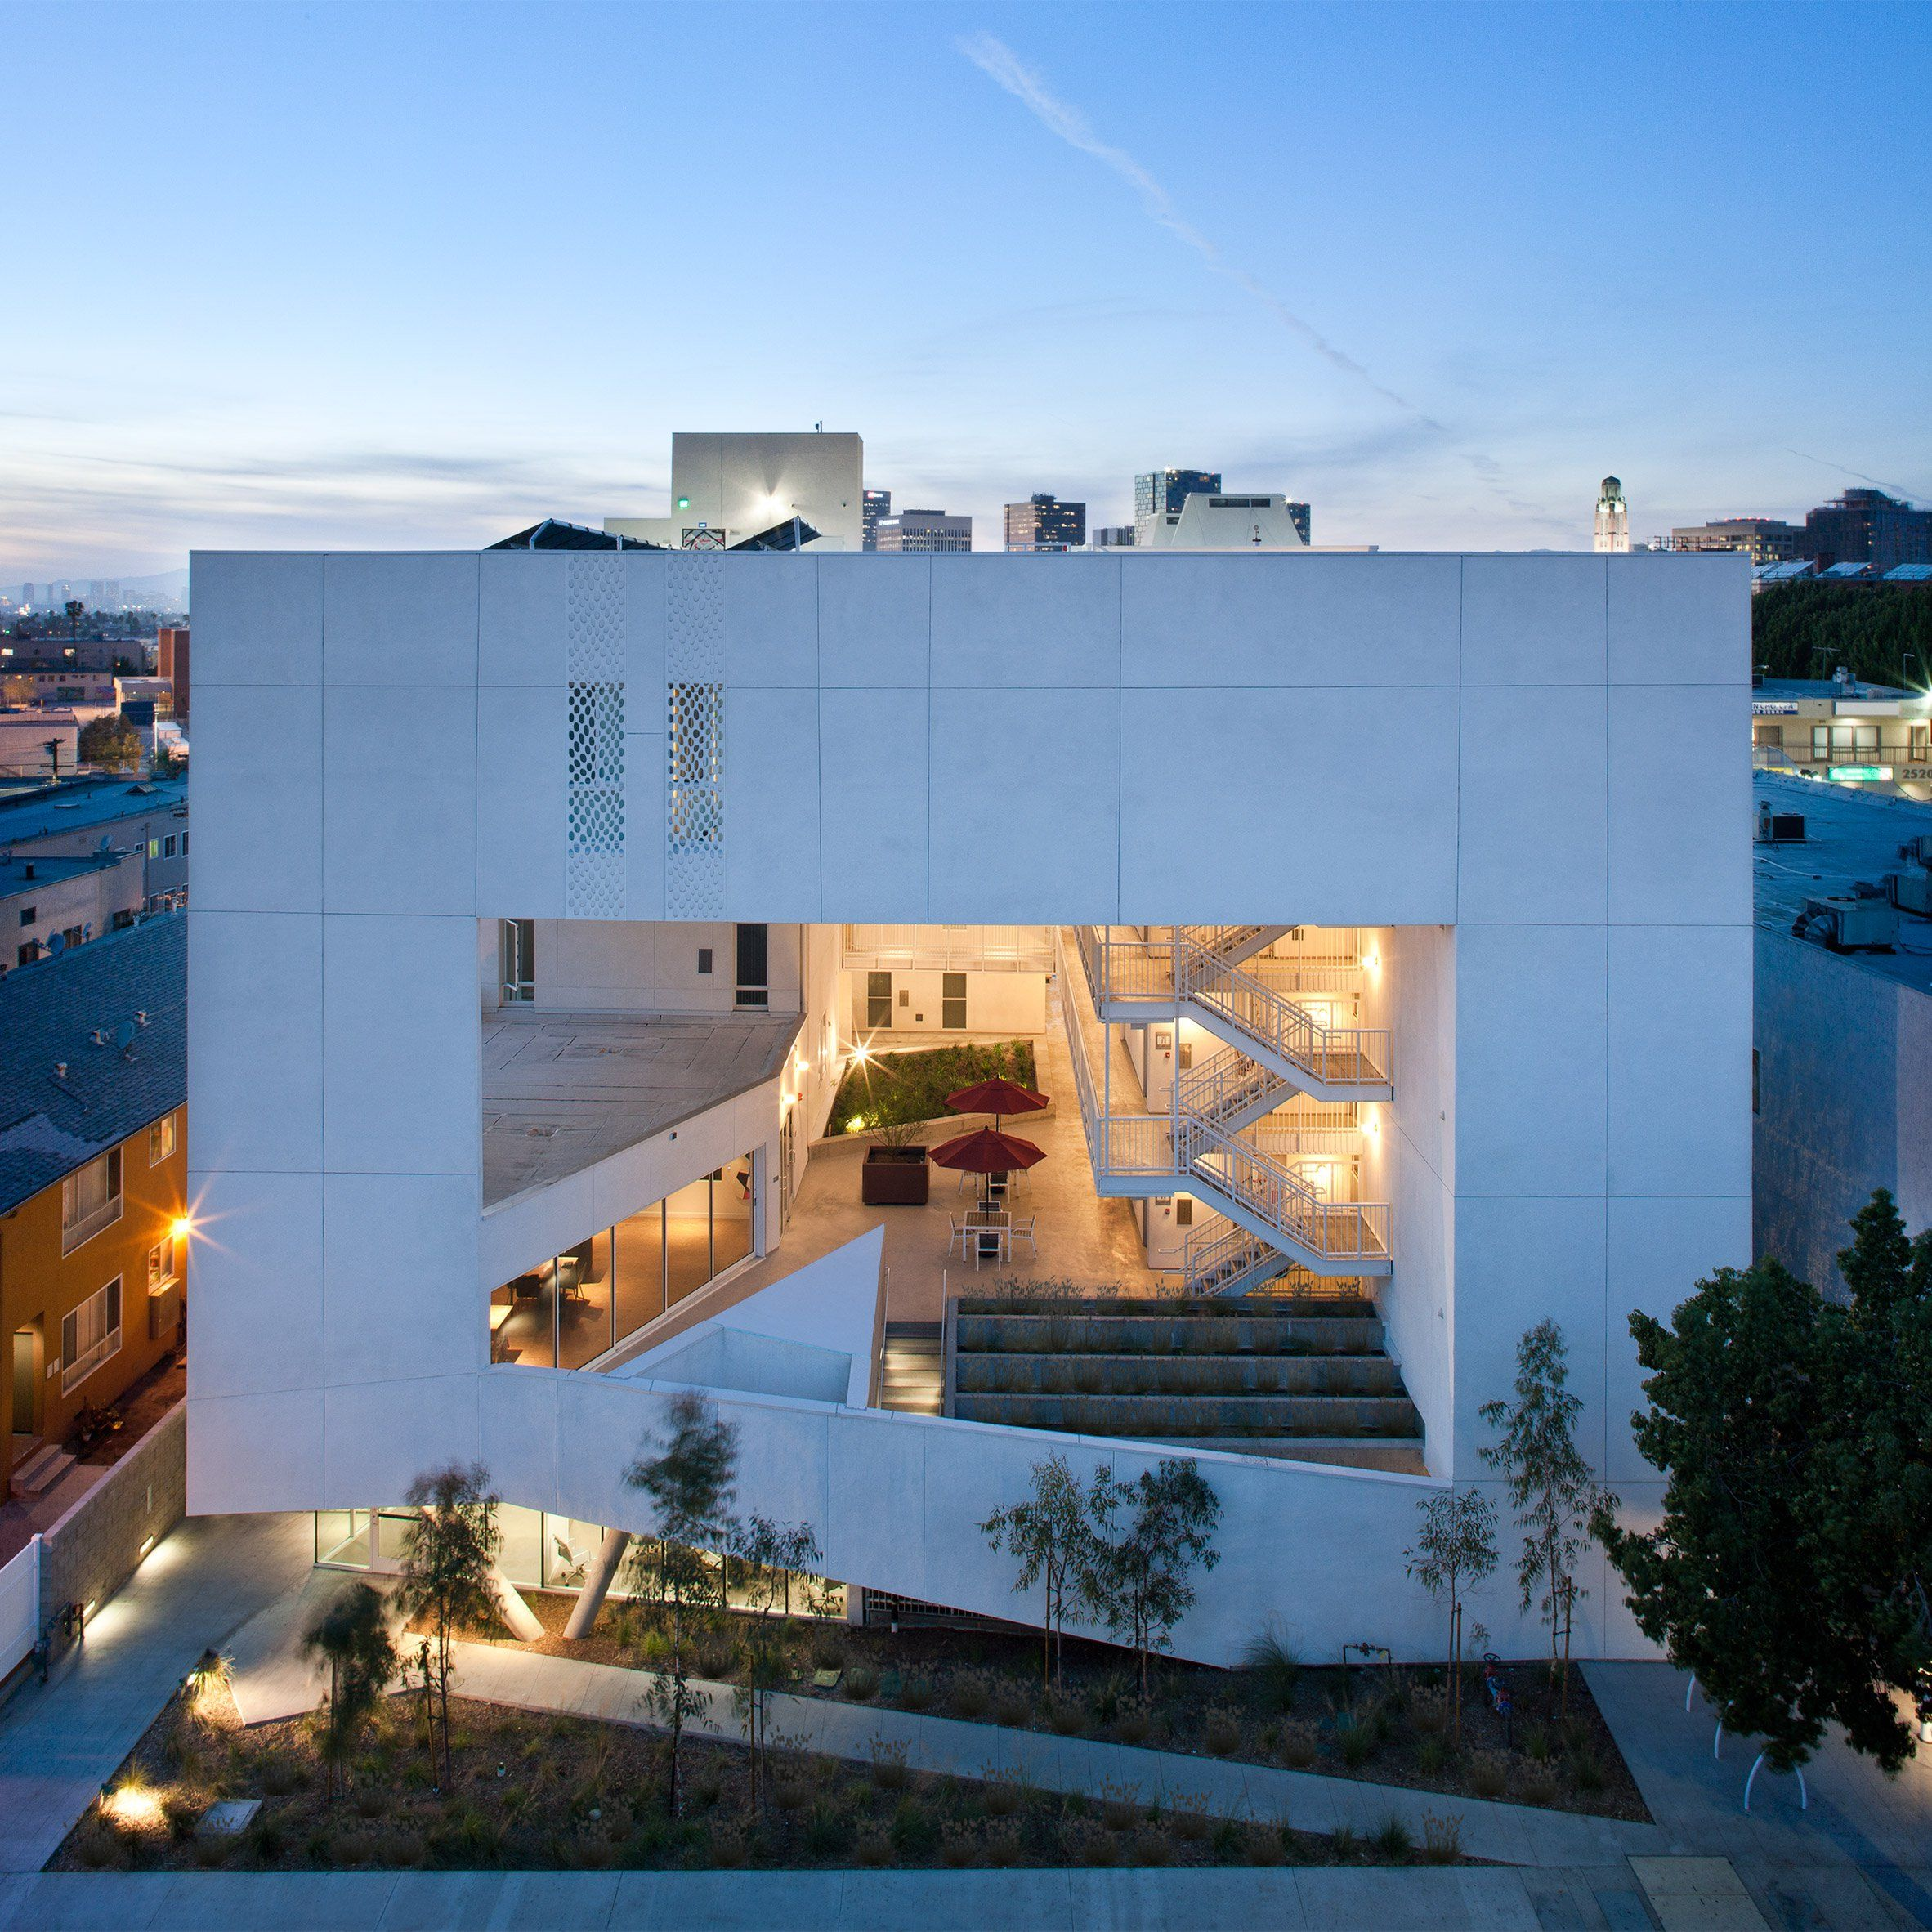 Architecture S In California | California Architecture Firm Brooks Scarpa Has Designed A Low